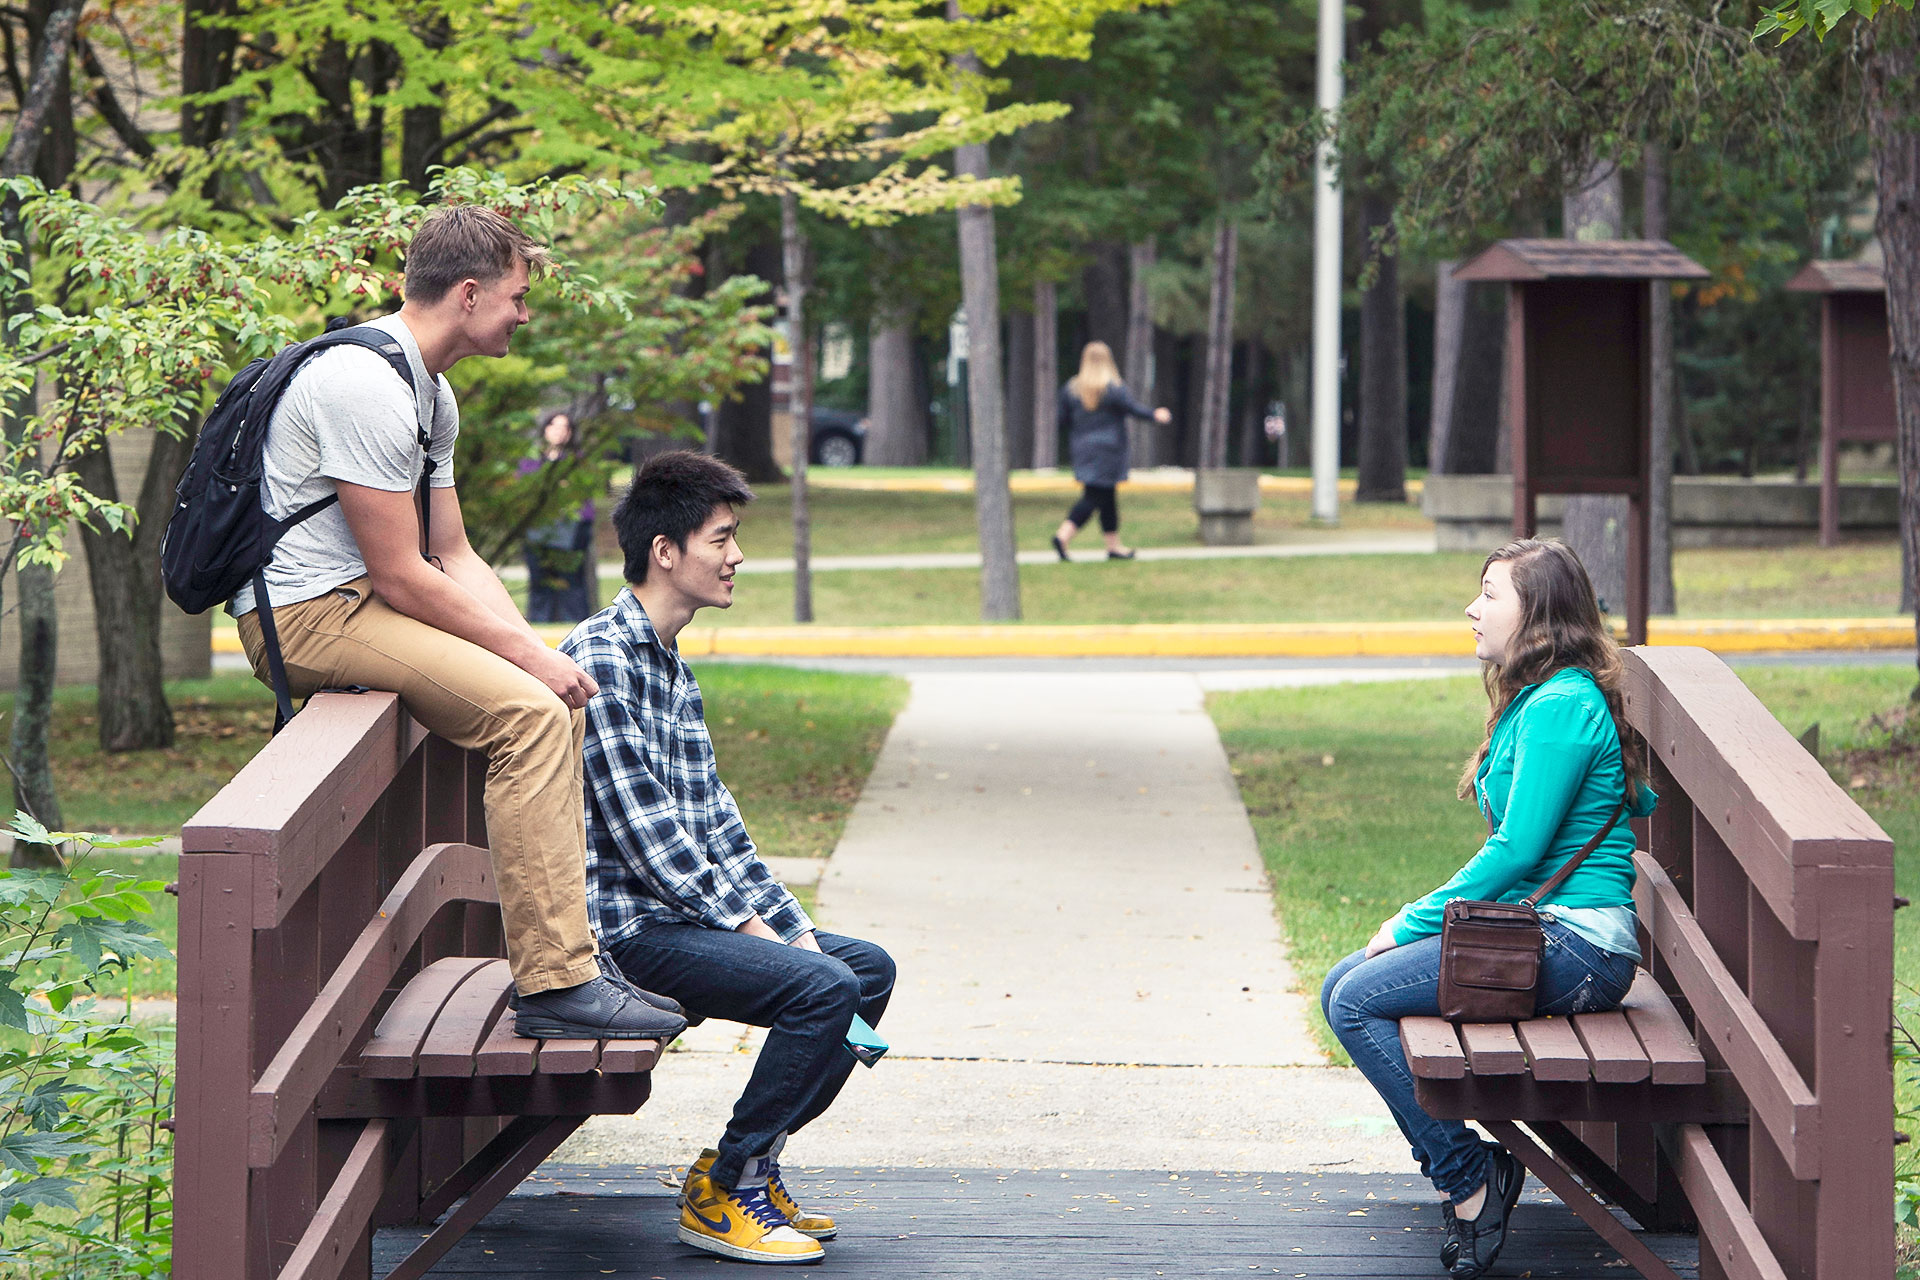 Students sitting on benches in Marinette